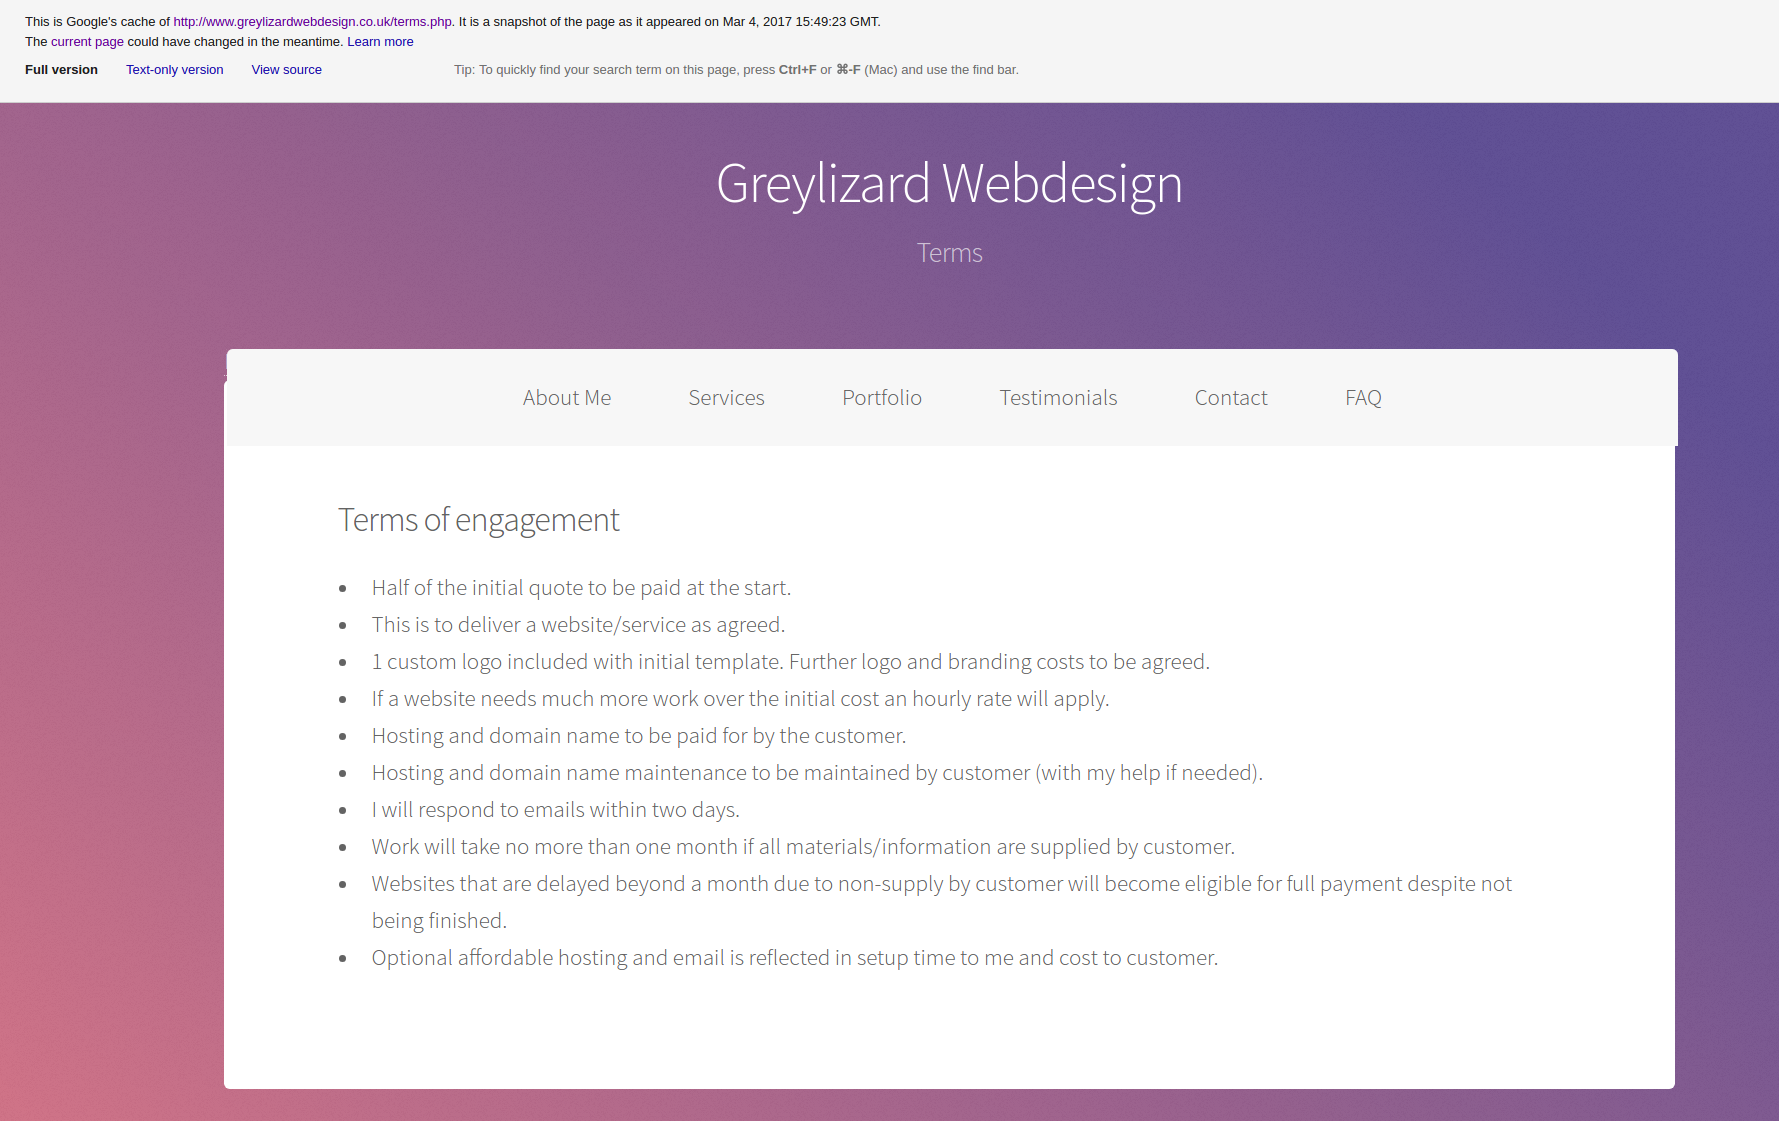 greylizard-webdesign-terms-04032017.png